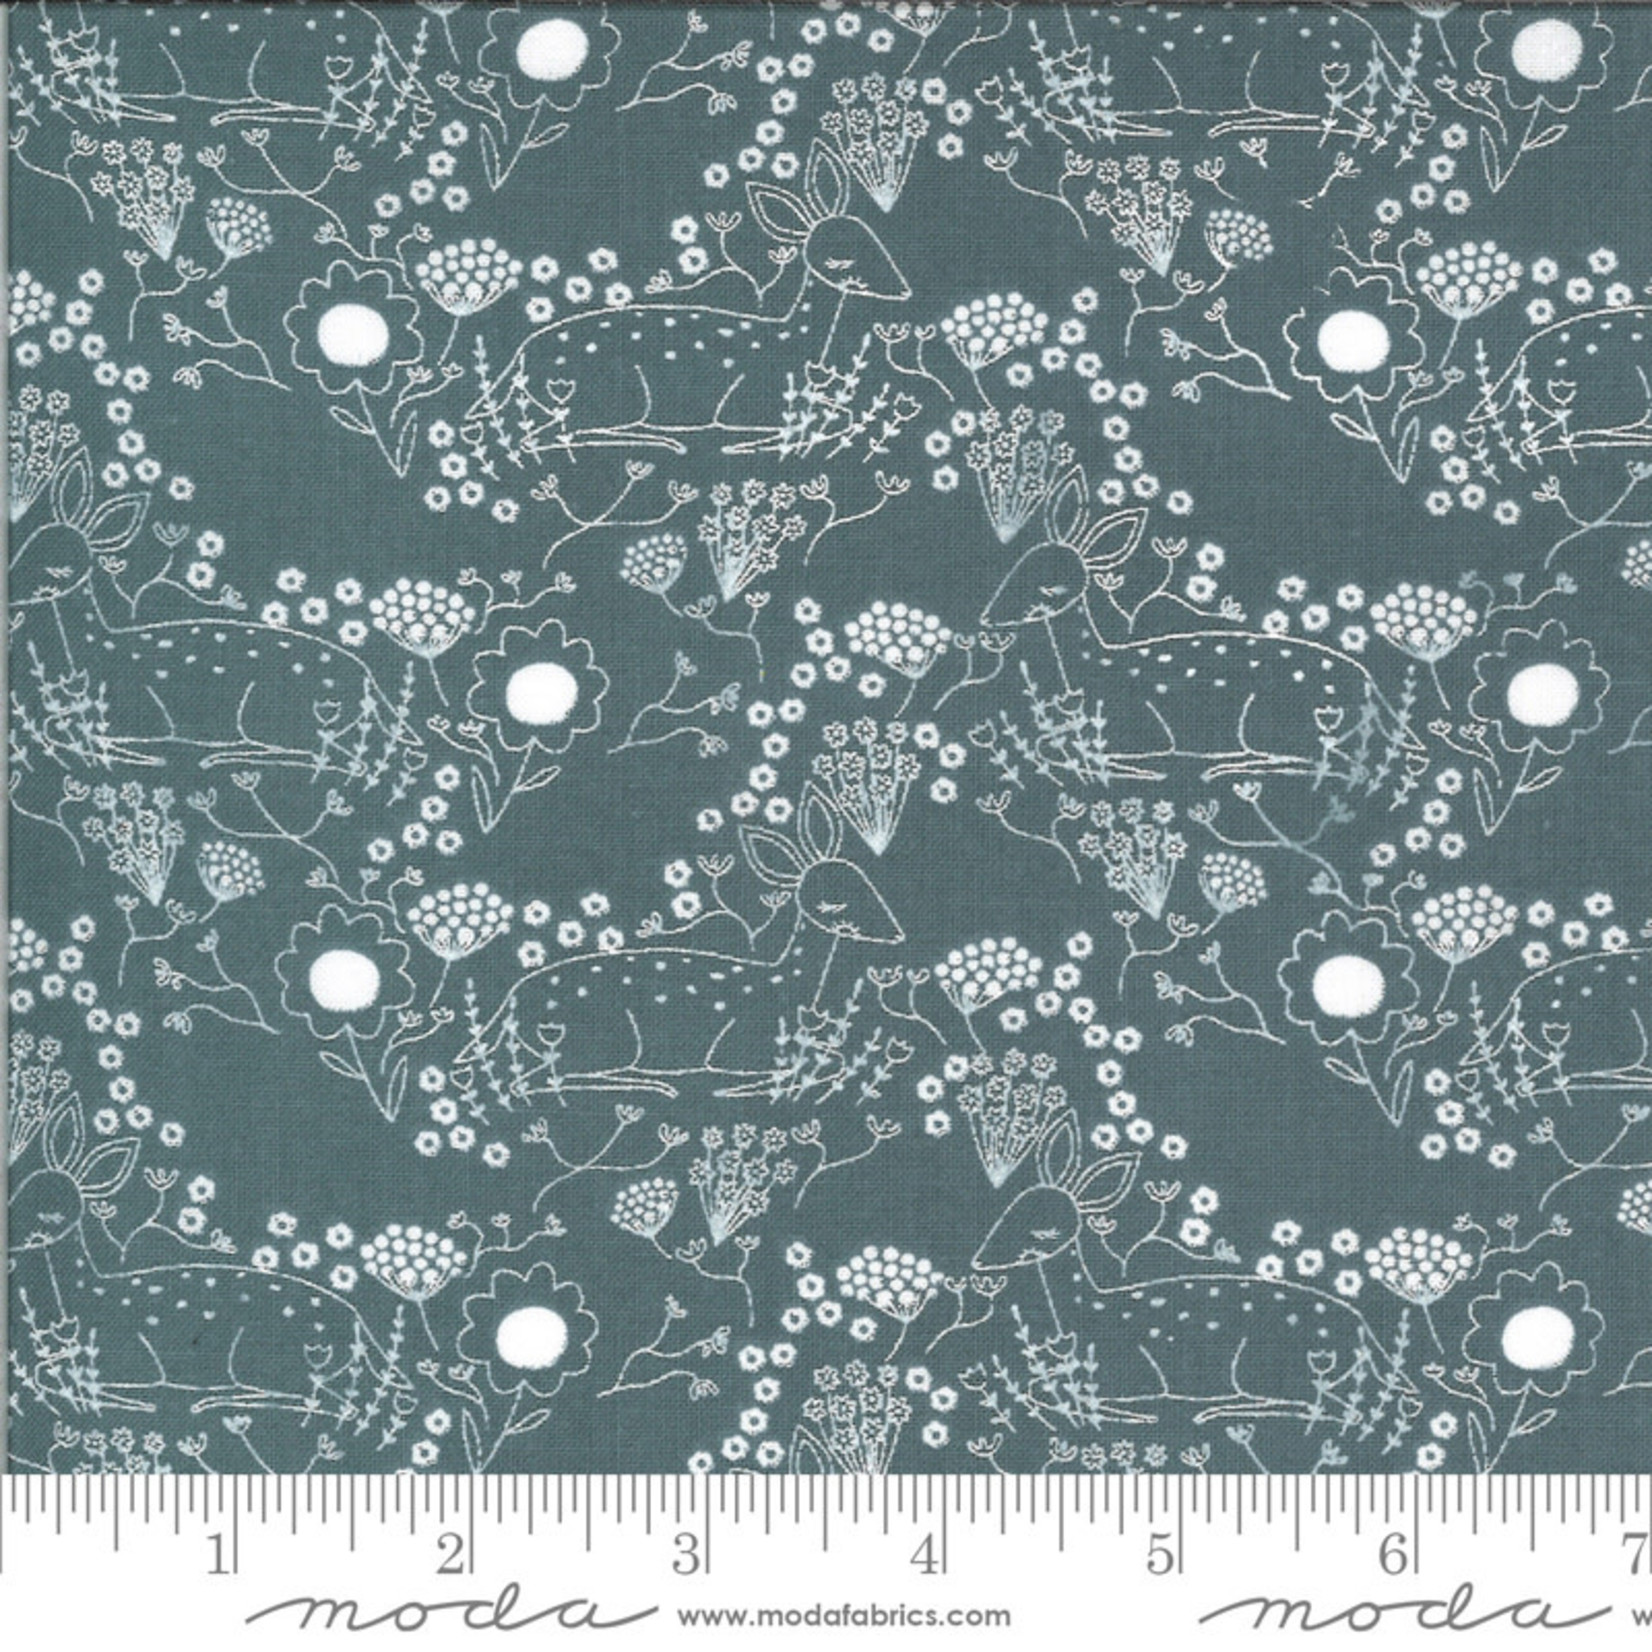 Gingiber Dwell In Possibility, Meadow Deer, Sky 48313 16 $0.20/cm or $20/m